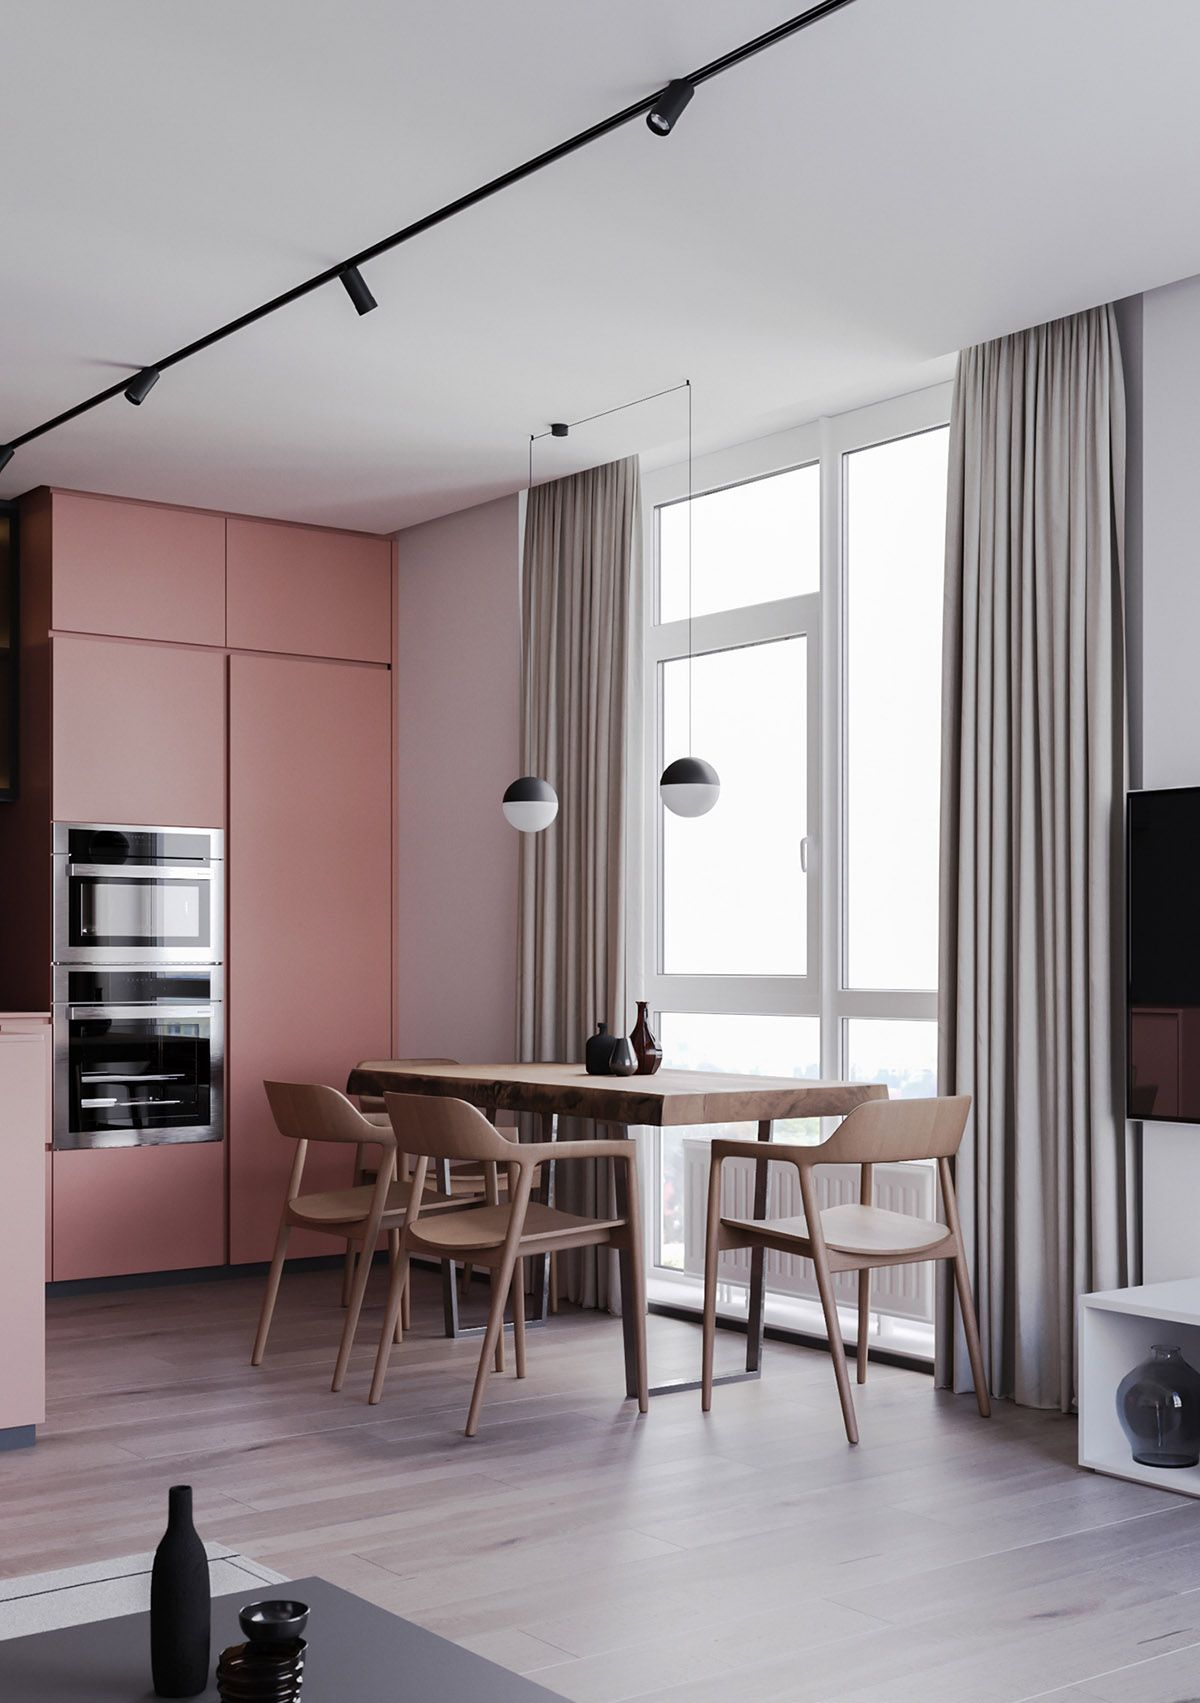 A Striking Example Of Interior Design Using Pink & Grey ...